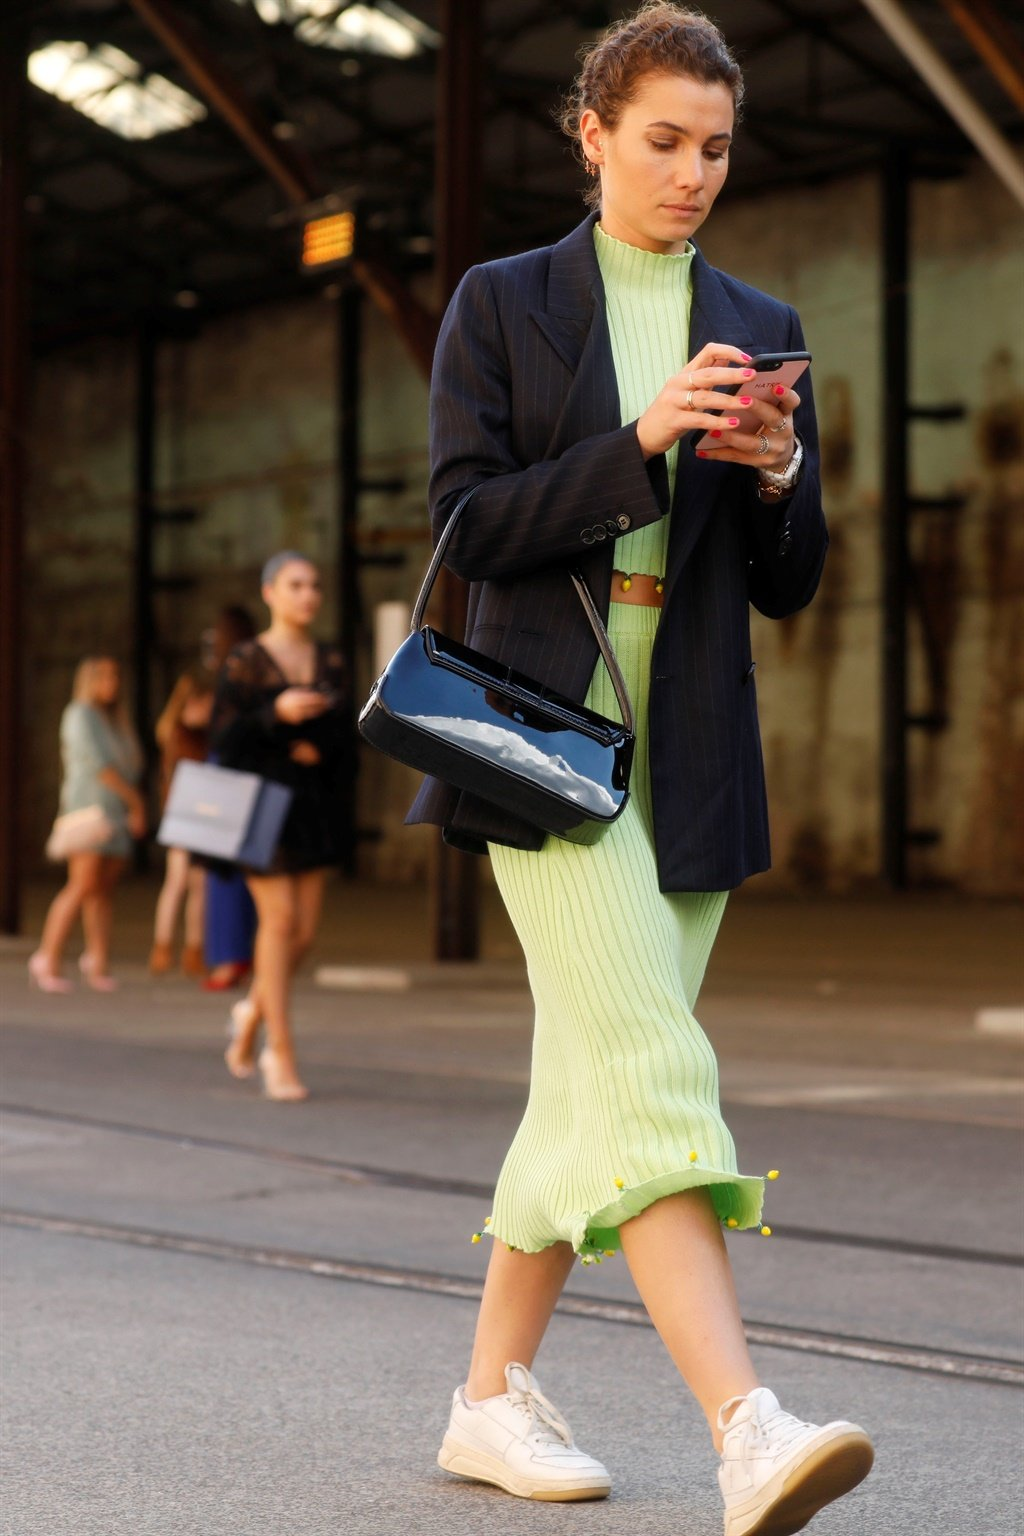 SYDNEY, AUSTRALIA - MAY 15: A guest wearing neon g